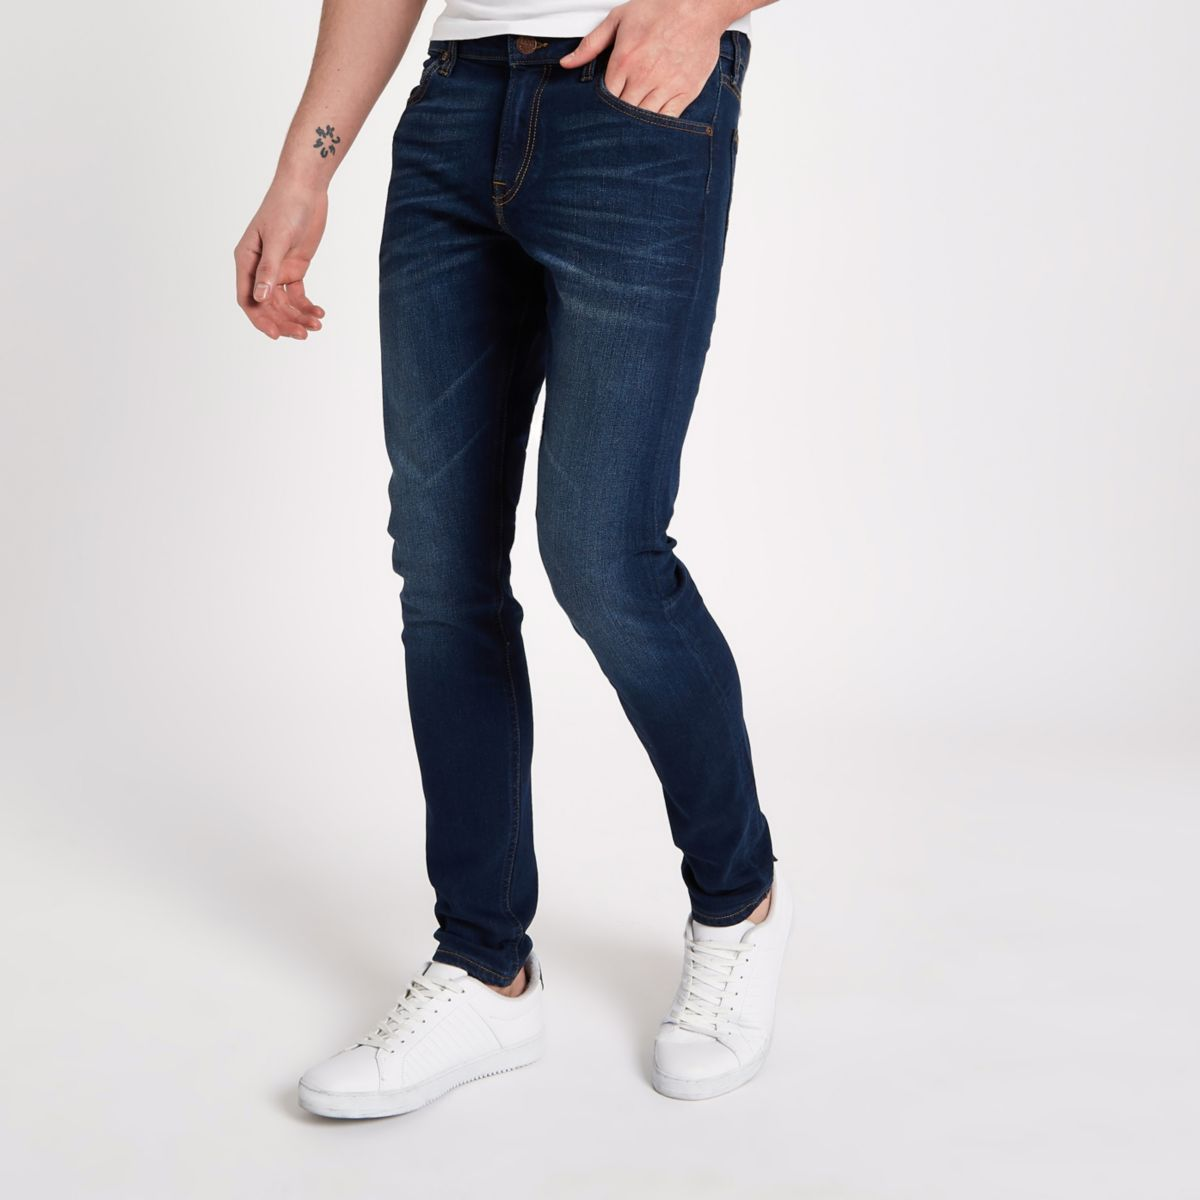 Lee blue stretch skinny fit Malone jeans